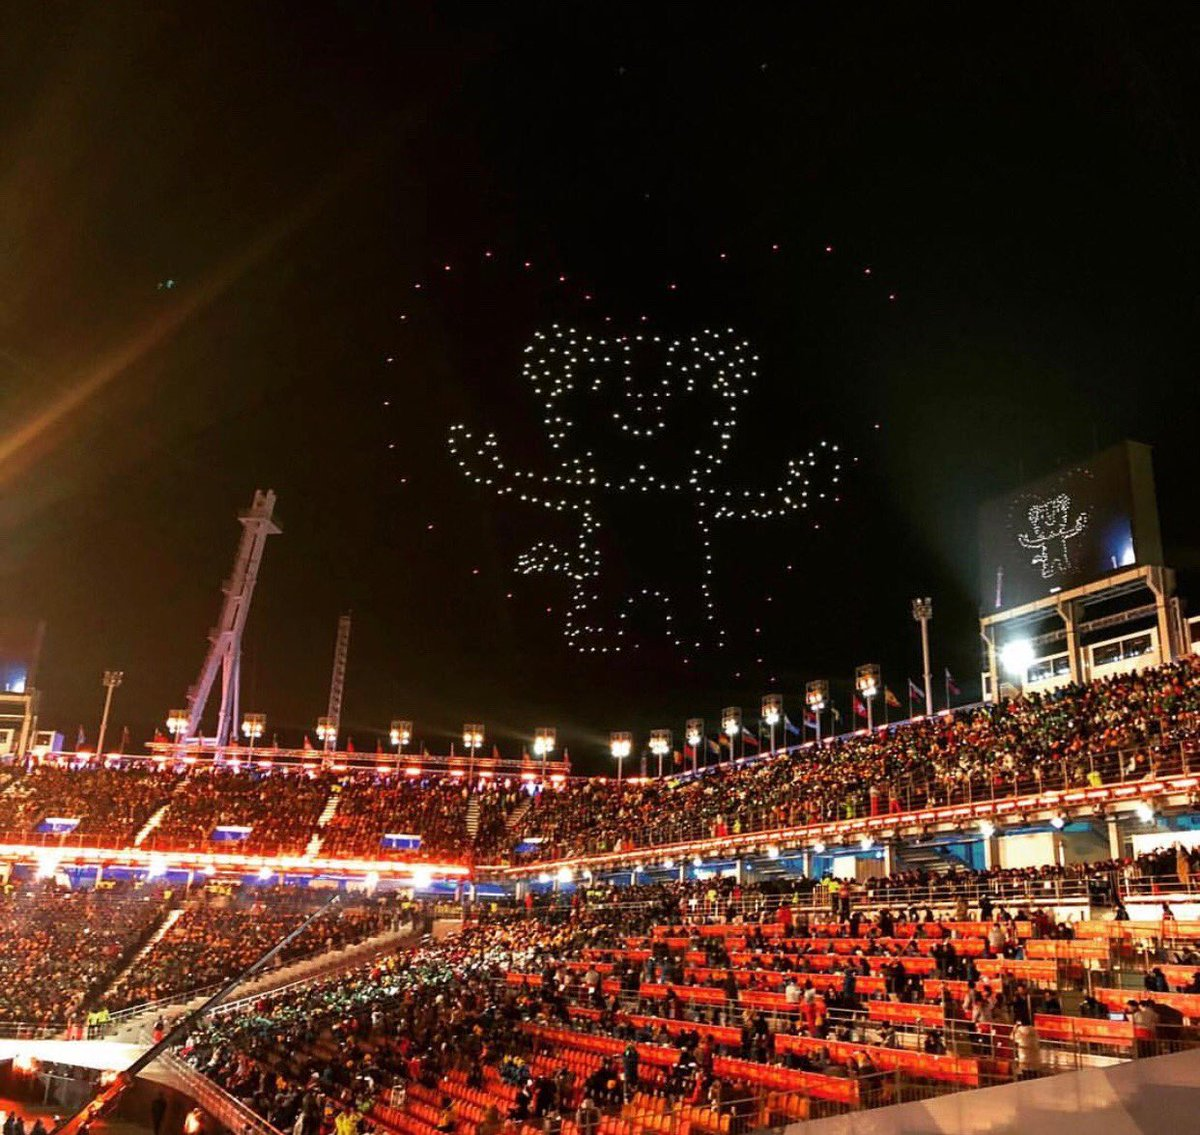 the #ClosingCeremony gave me soohorang made of drones in the sky, what could be better?? 🌌🐻💞